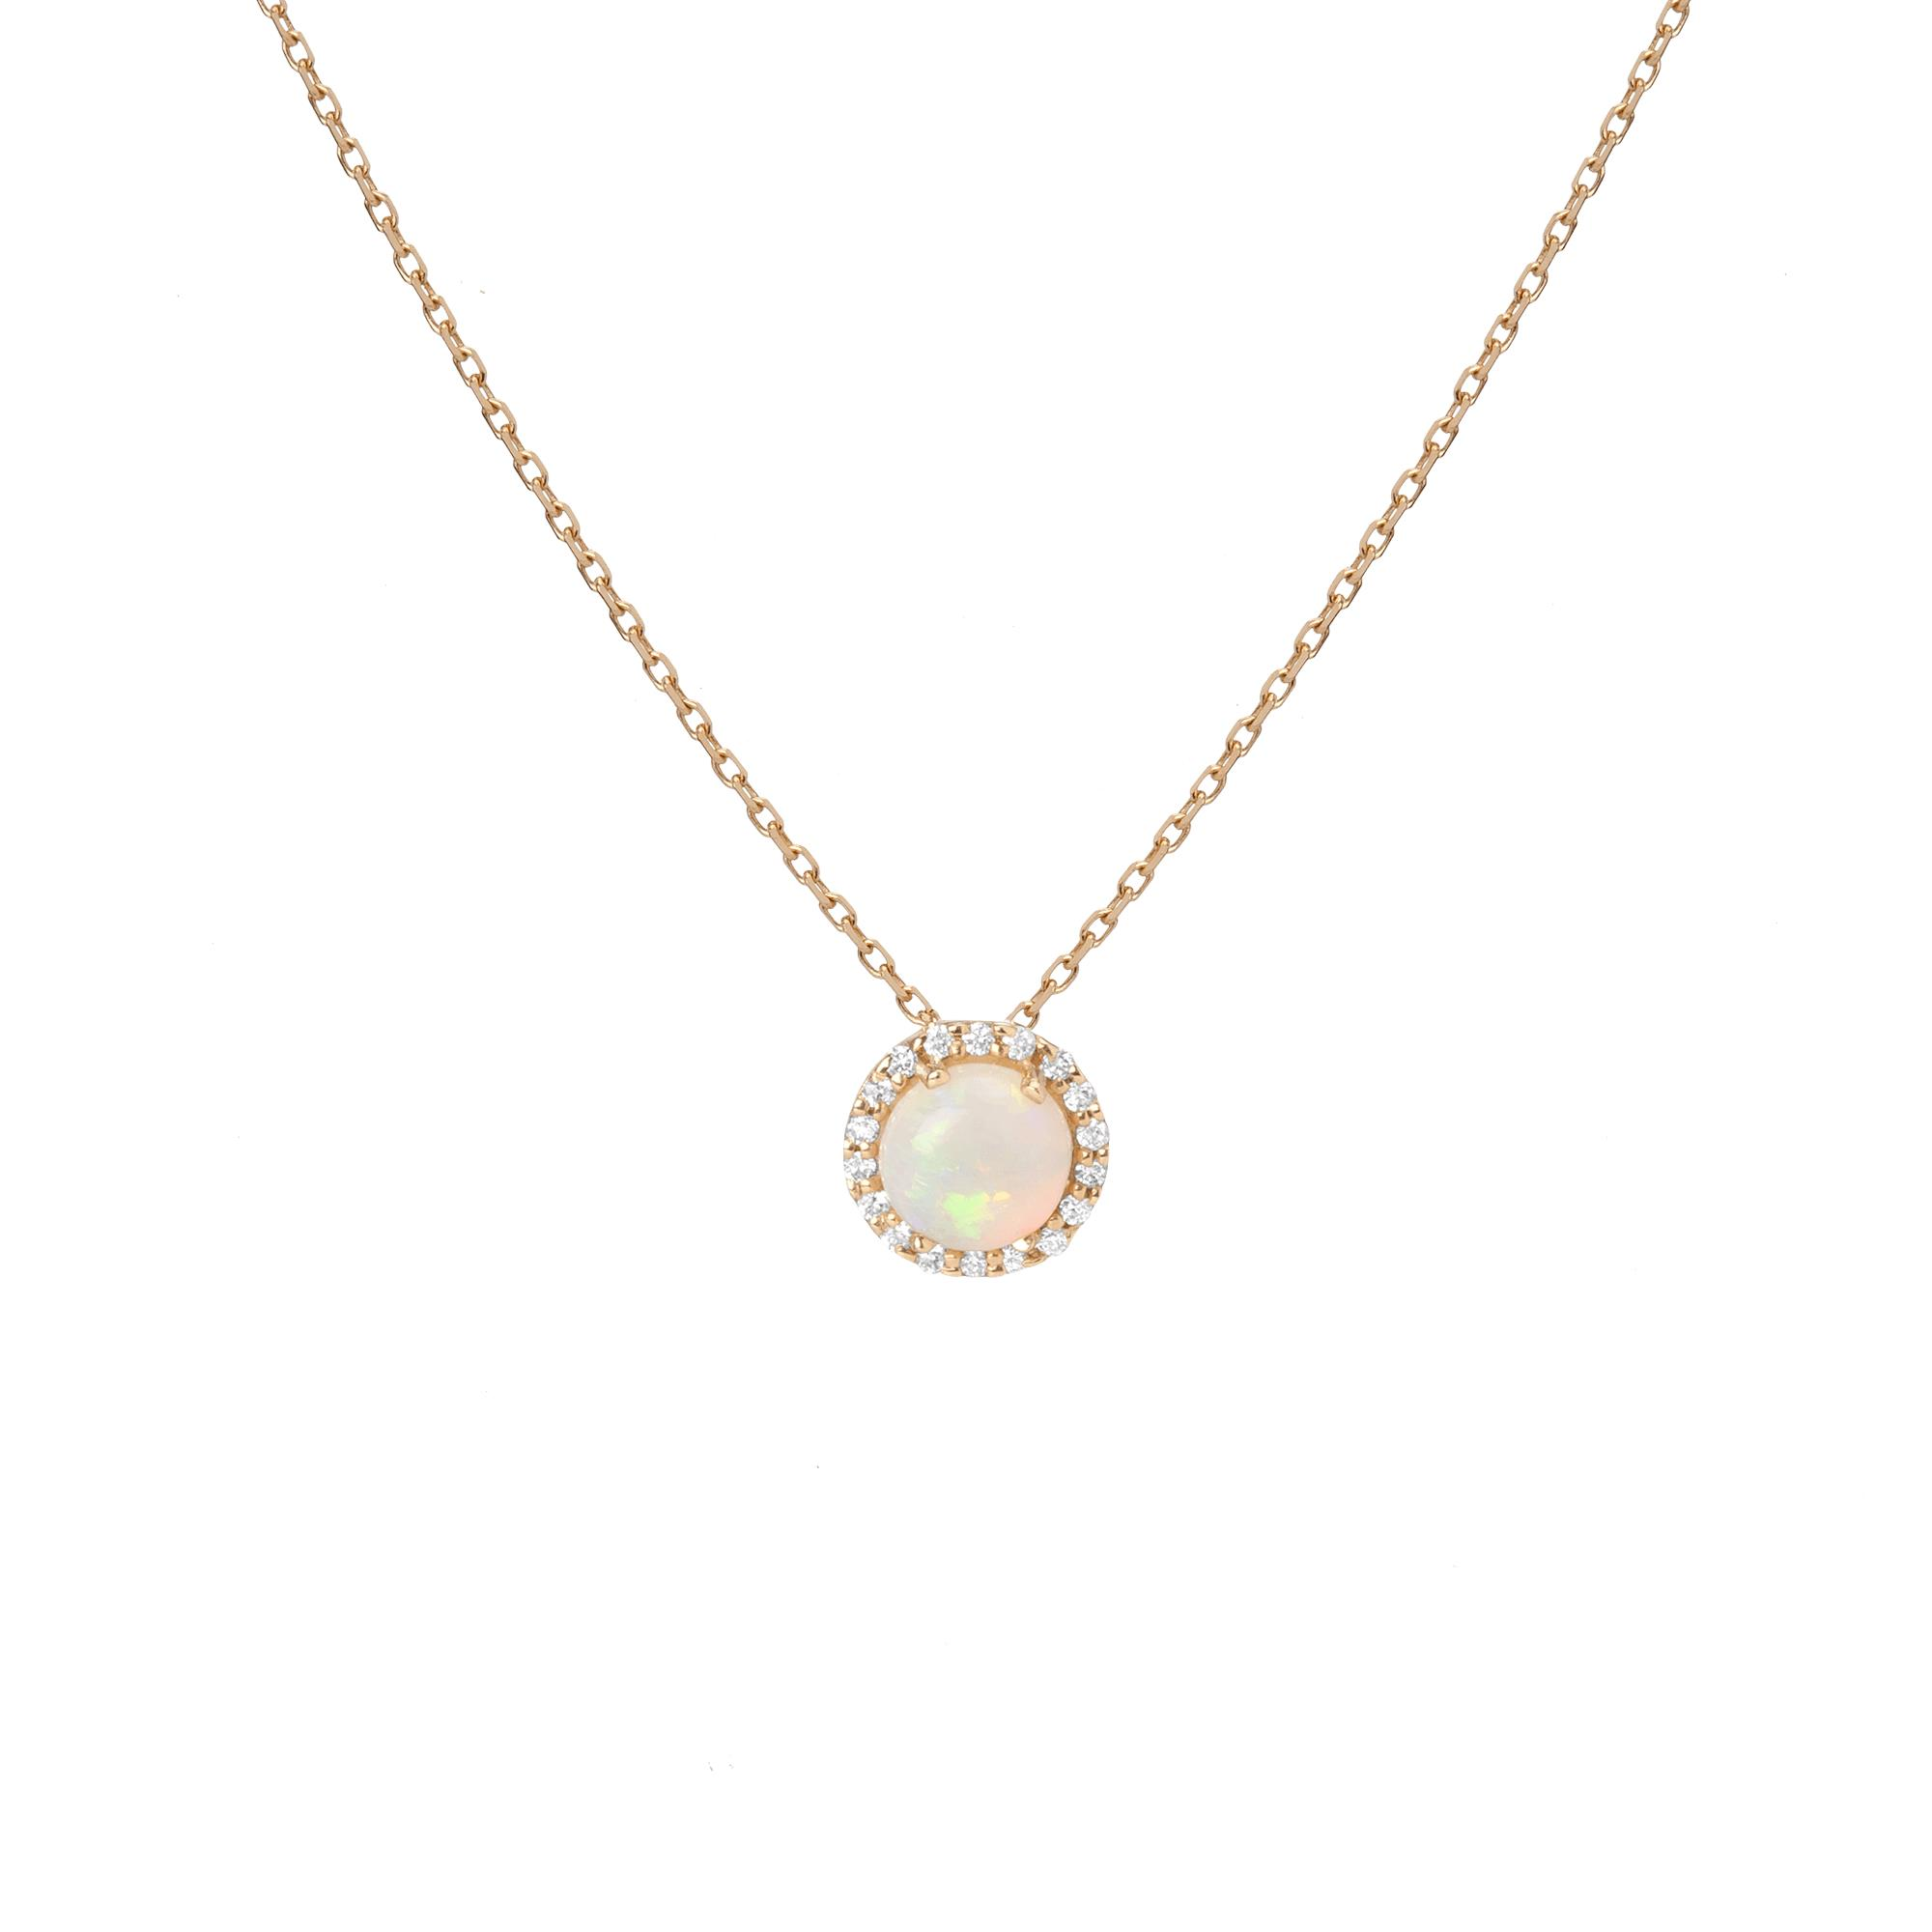 Halo Diamond Opal Pendant in Yellow, Rose or White Gold